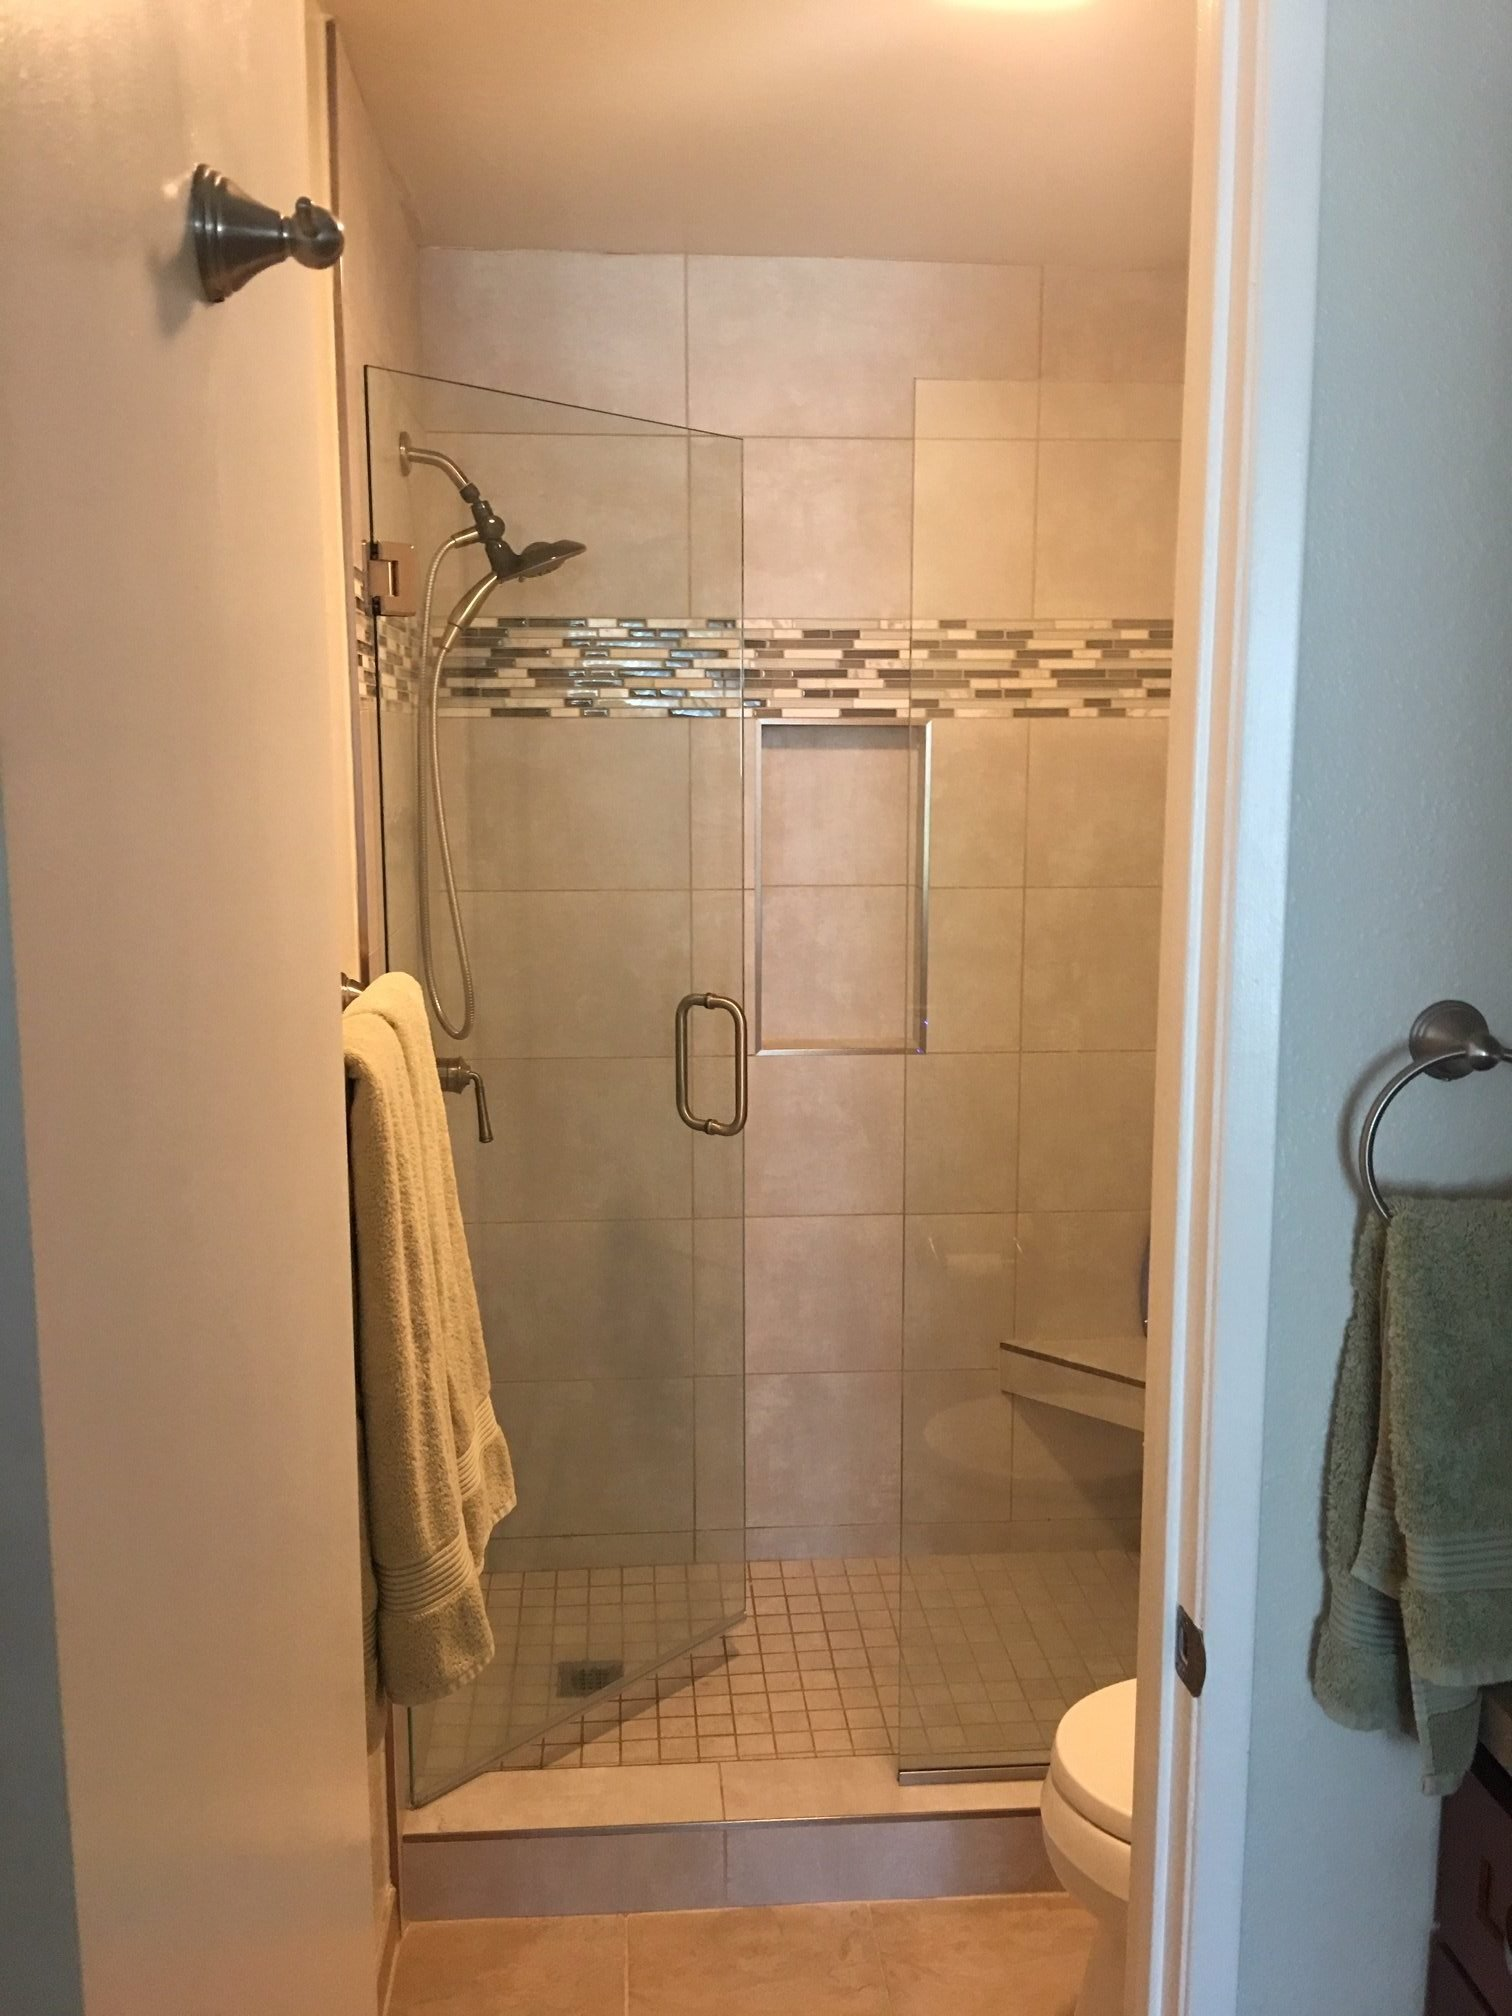 Unit F-106 step in shower with seat and glass door